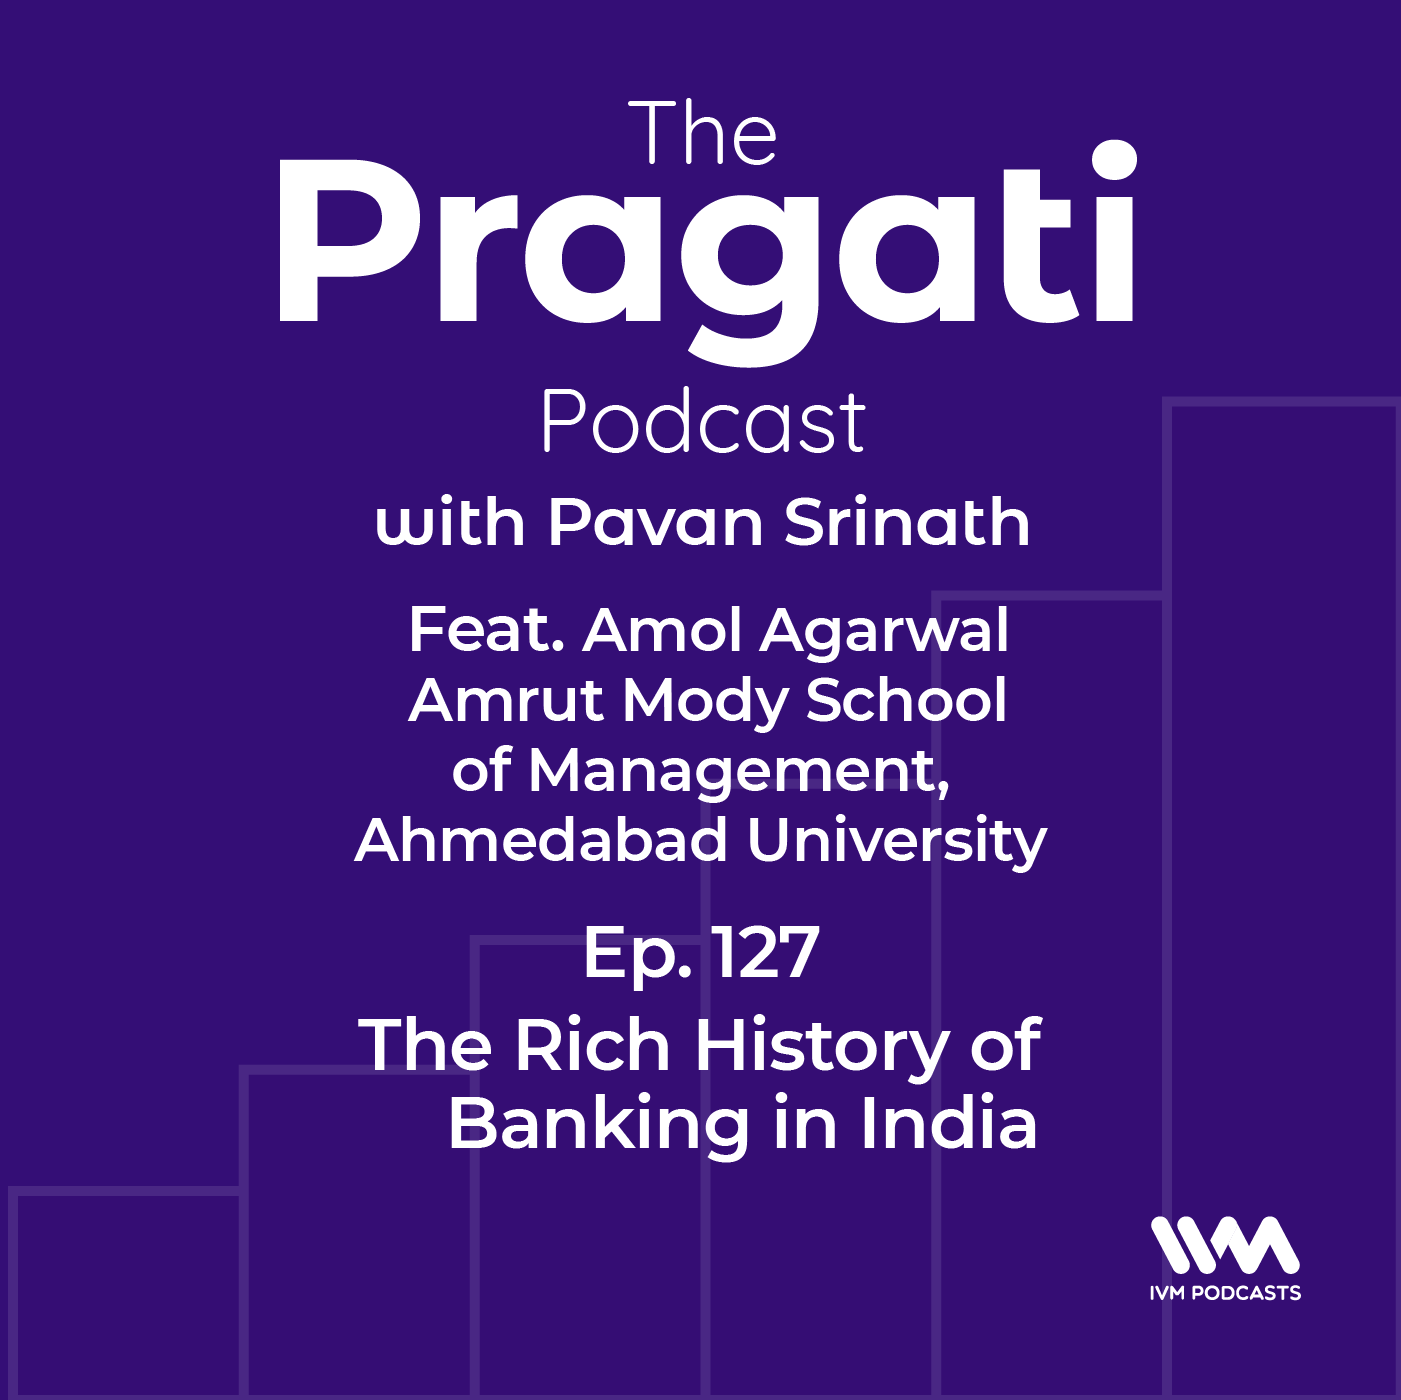 Ep. 127: The Rich History of Banking in India